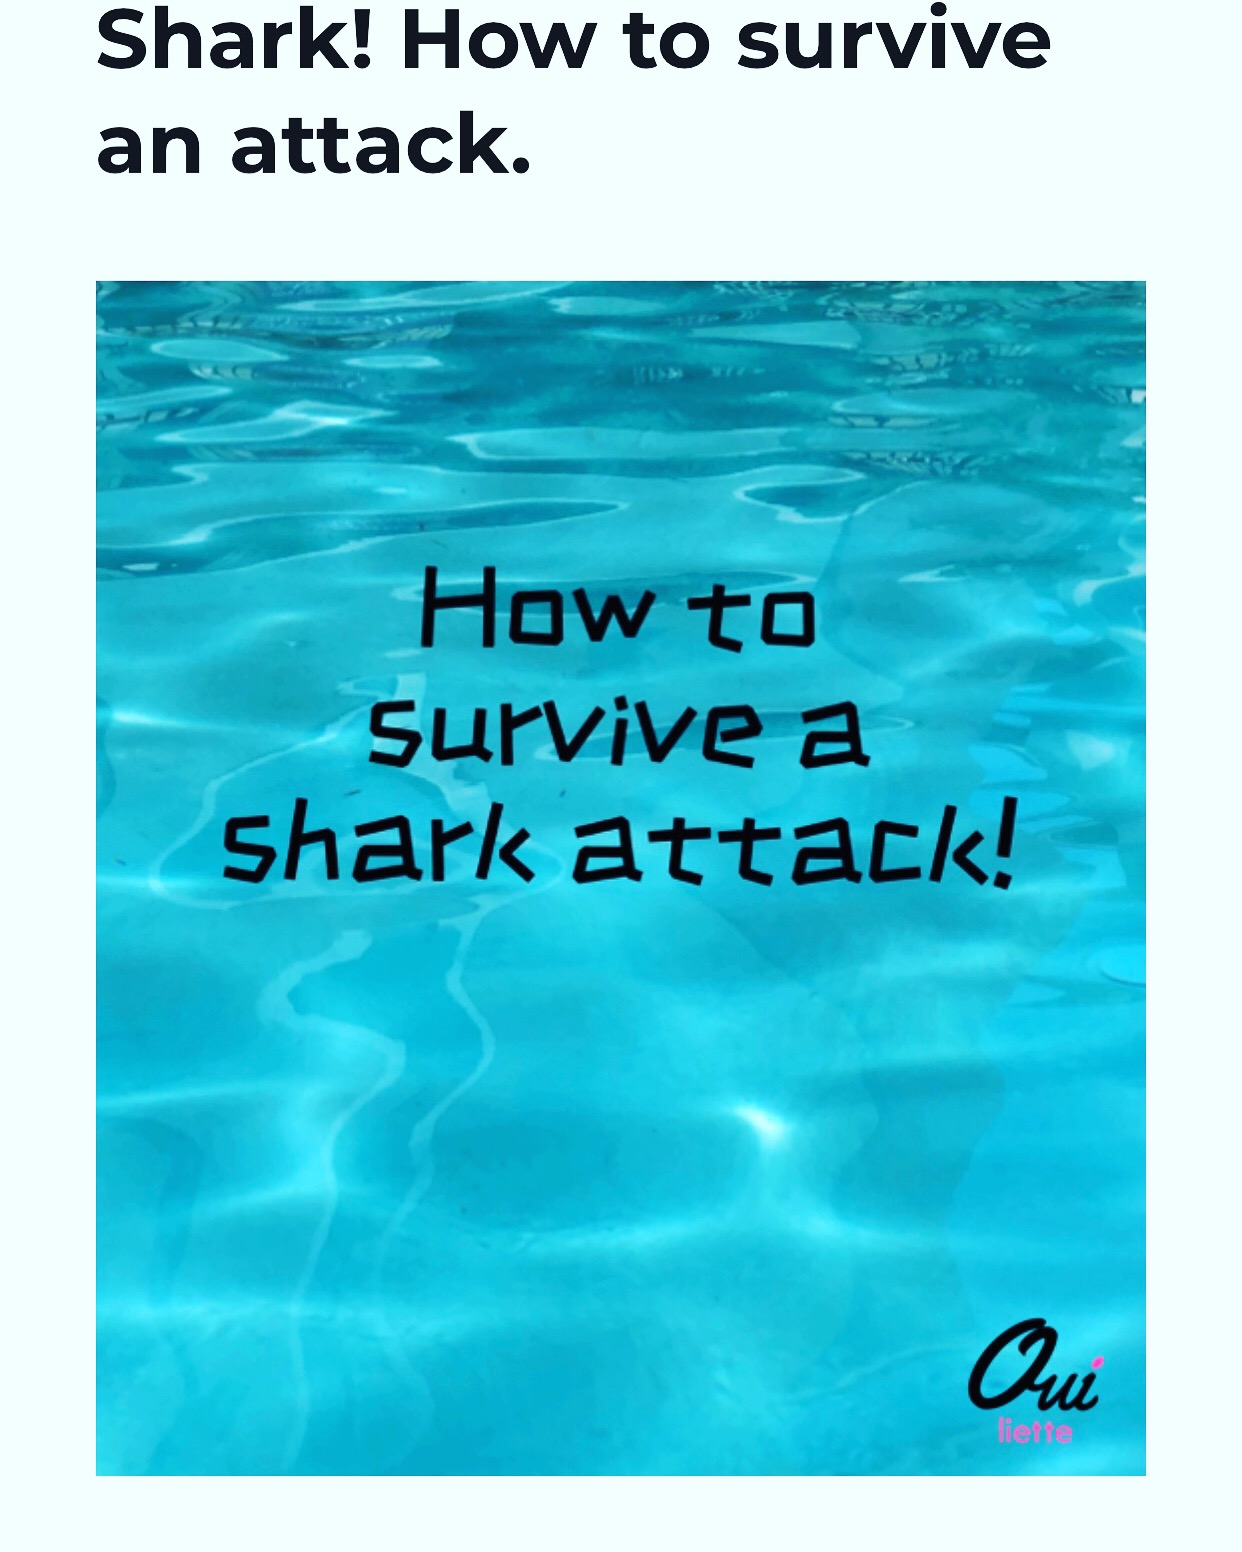 Shark! How to survive an attack.